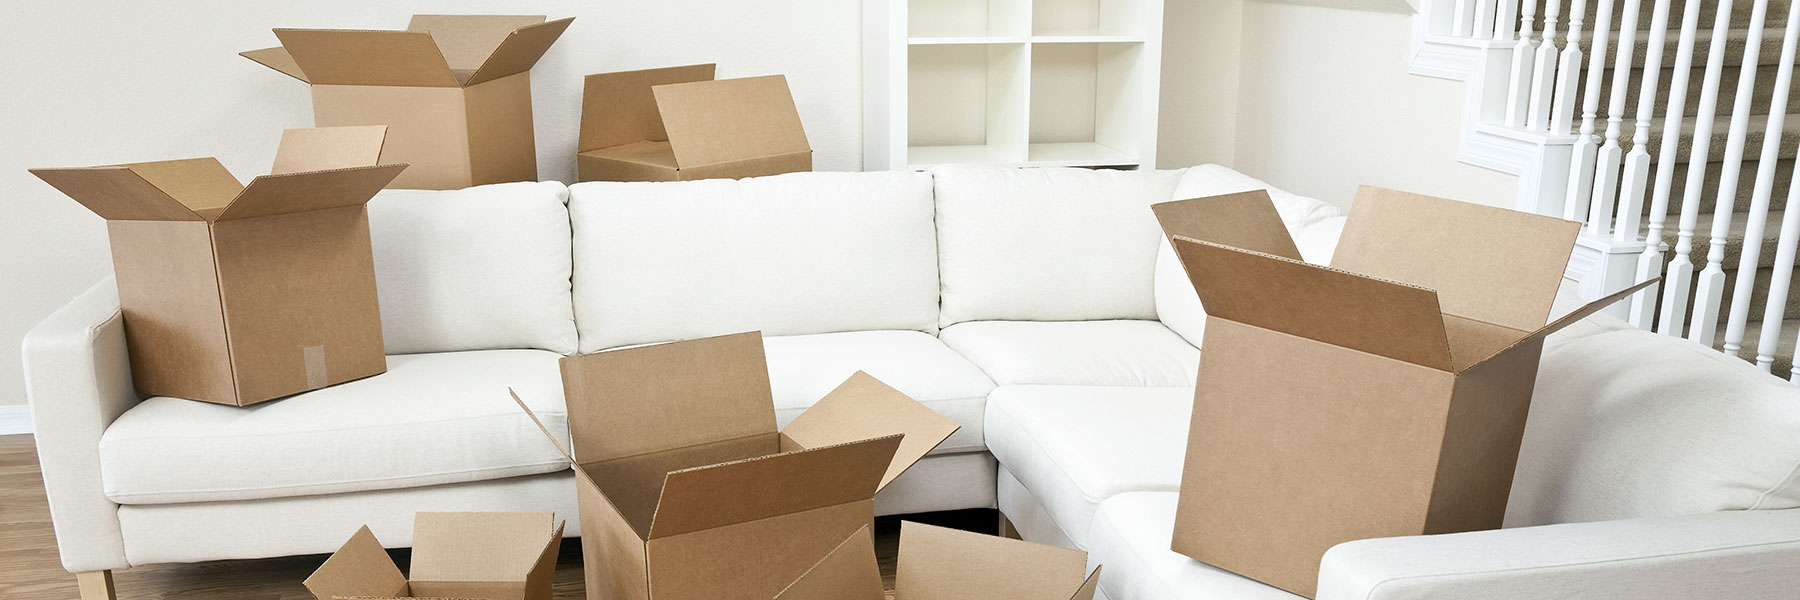 HOUSE CLEARANCE PLYMOUTH - Friendly and reliable house clearance services  for Plymouth